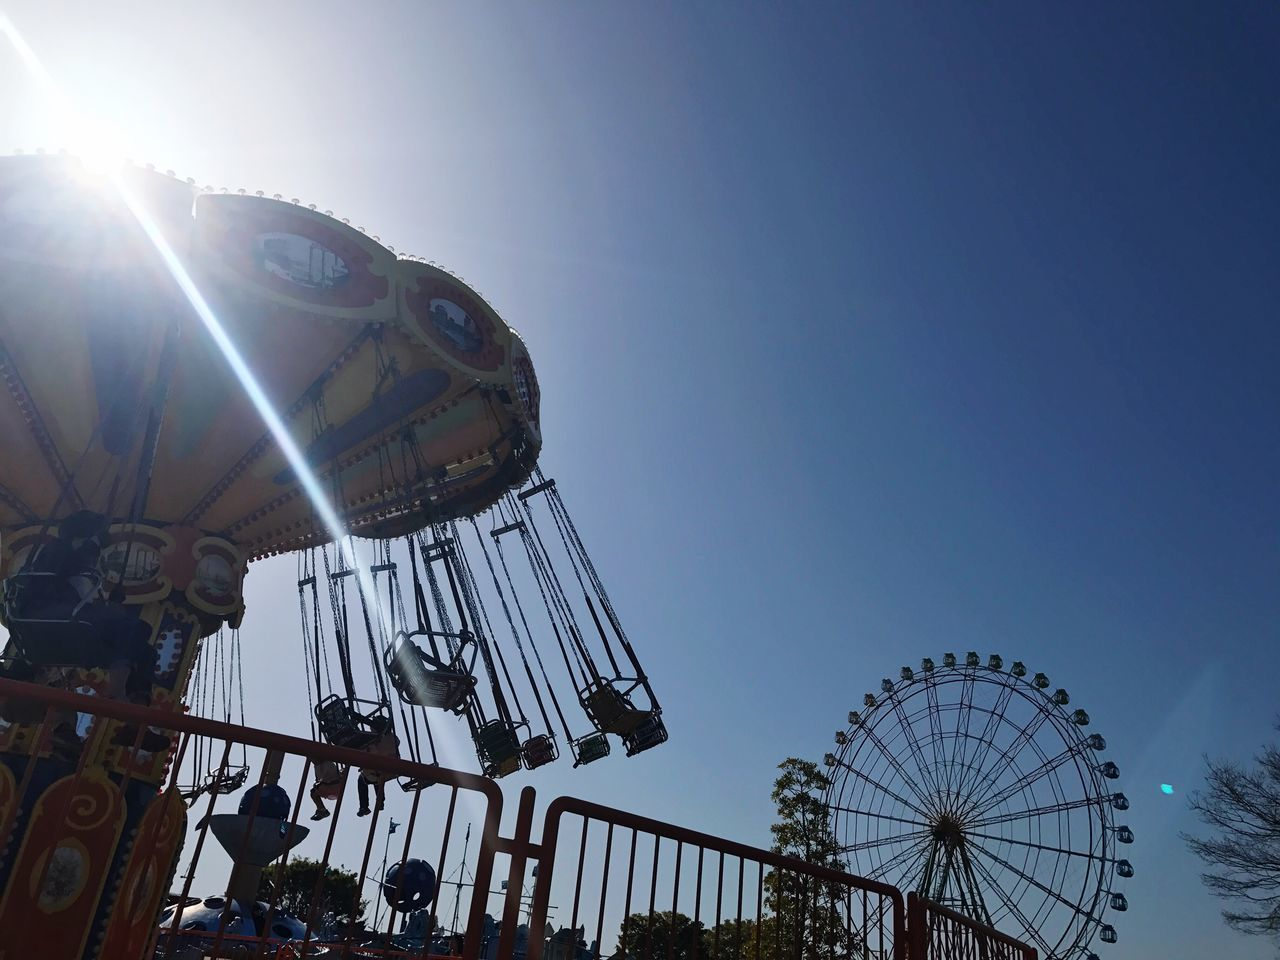 Amusement Park Arts Culture And Entertainment Amusement Park Ride Low Angle View Ferris Wheel Clear Sky Leisure Activity Enjoyment Traveling Carnival No People Built Structure Outdoors Big Wheel Day Sky Carousel Merrygoround Japan Ferris Wheel Evening